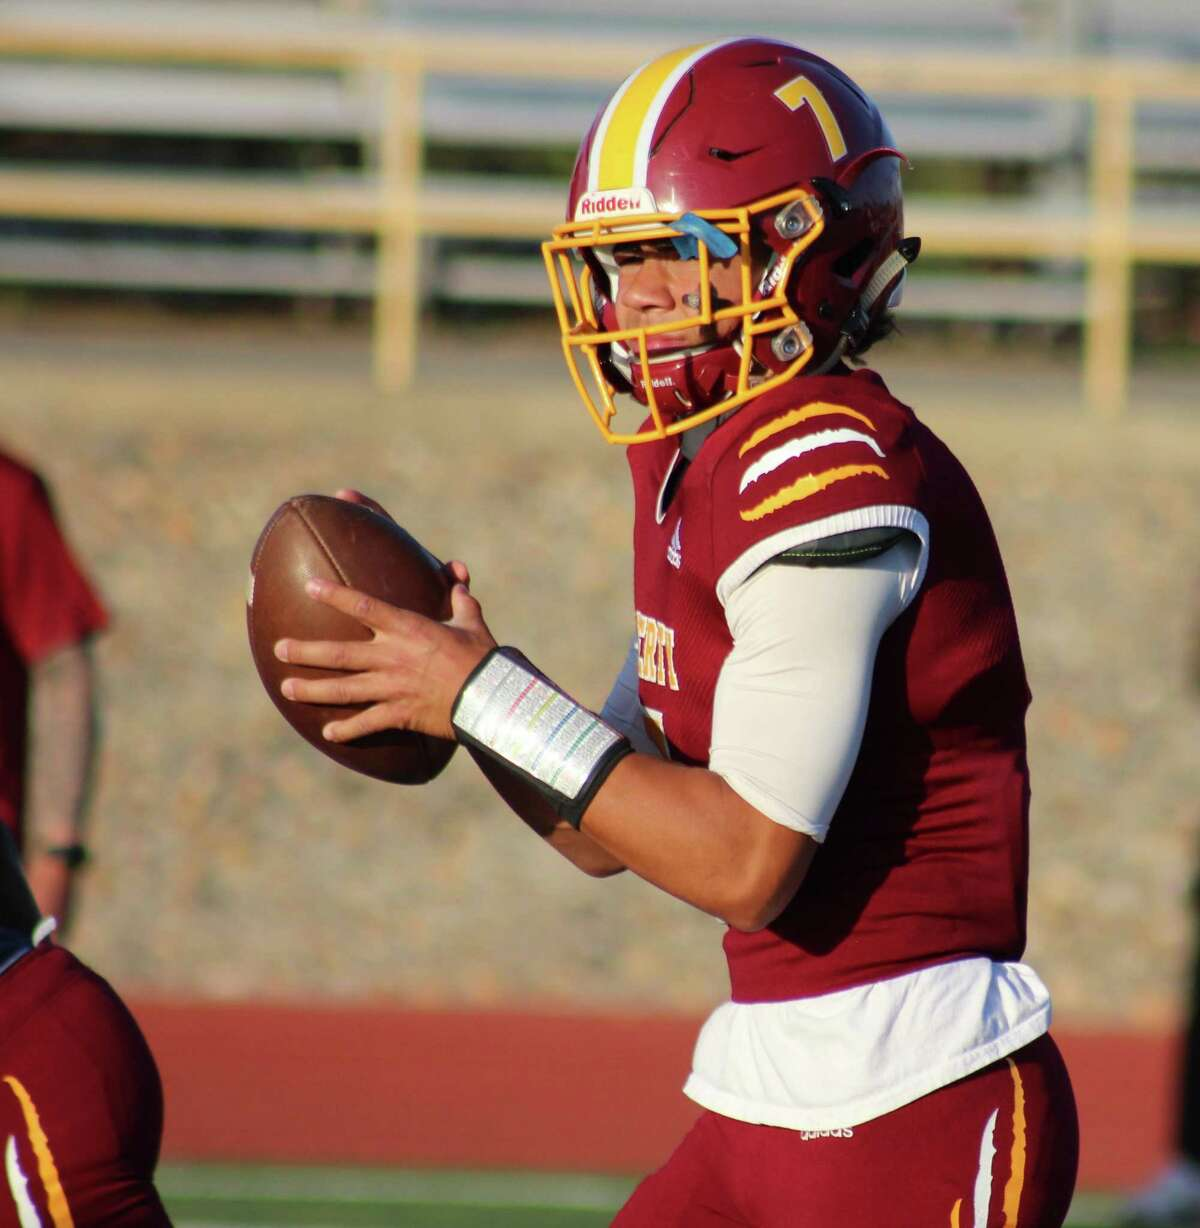 Liberty quarterback Nate Bell passed for 167 yards and a touchdown and ran 137 yards and a score in a win over Heritage on Friday night.